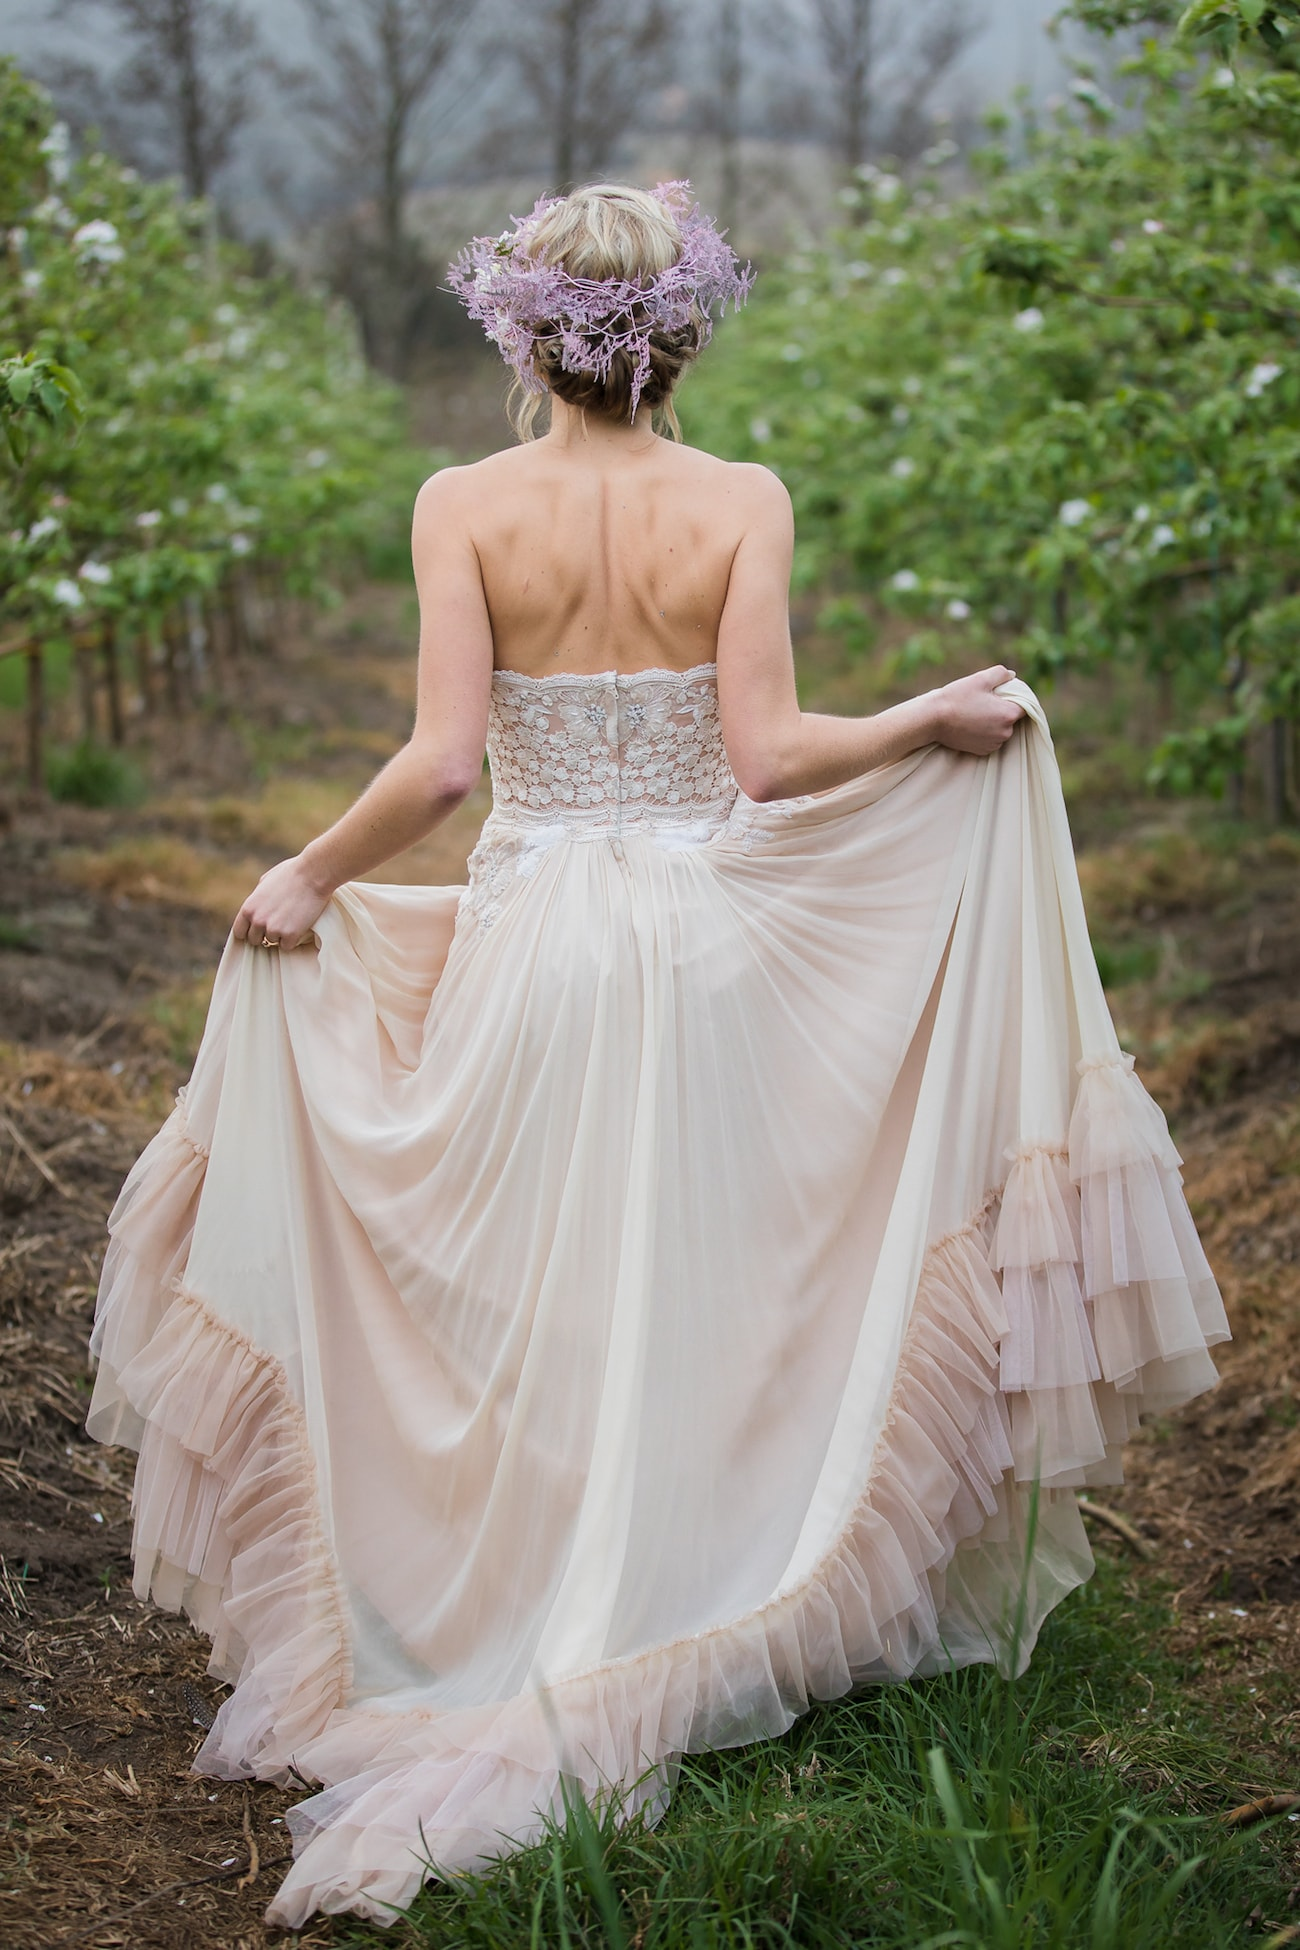 Blush Alana van Heerden Wedding Dress | Image: Sulet Fourie